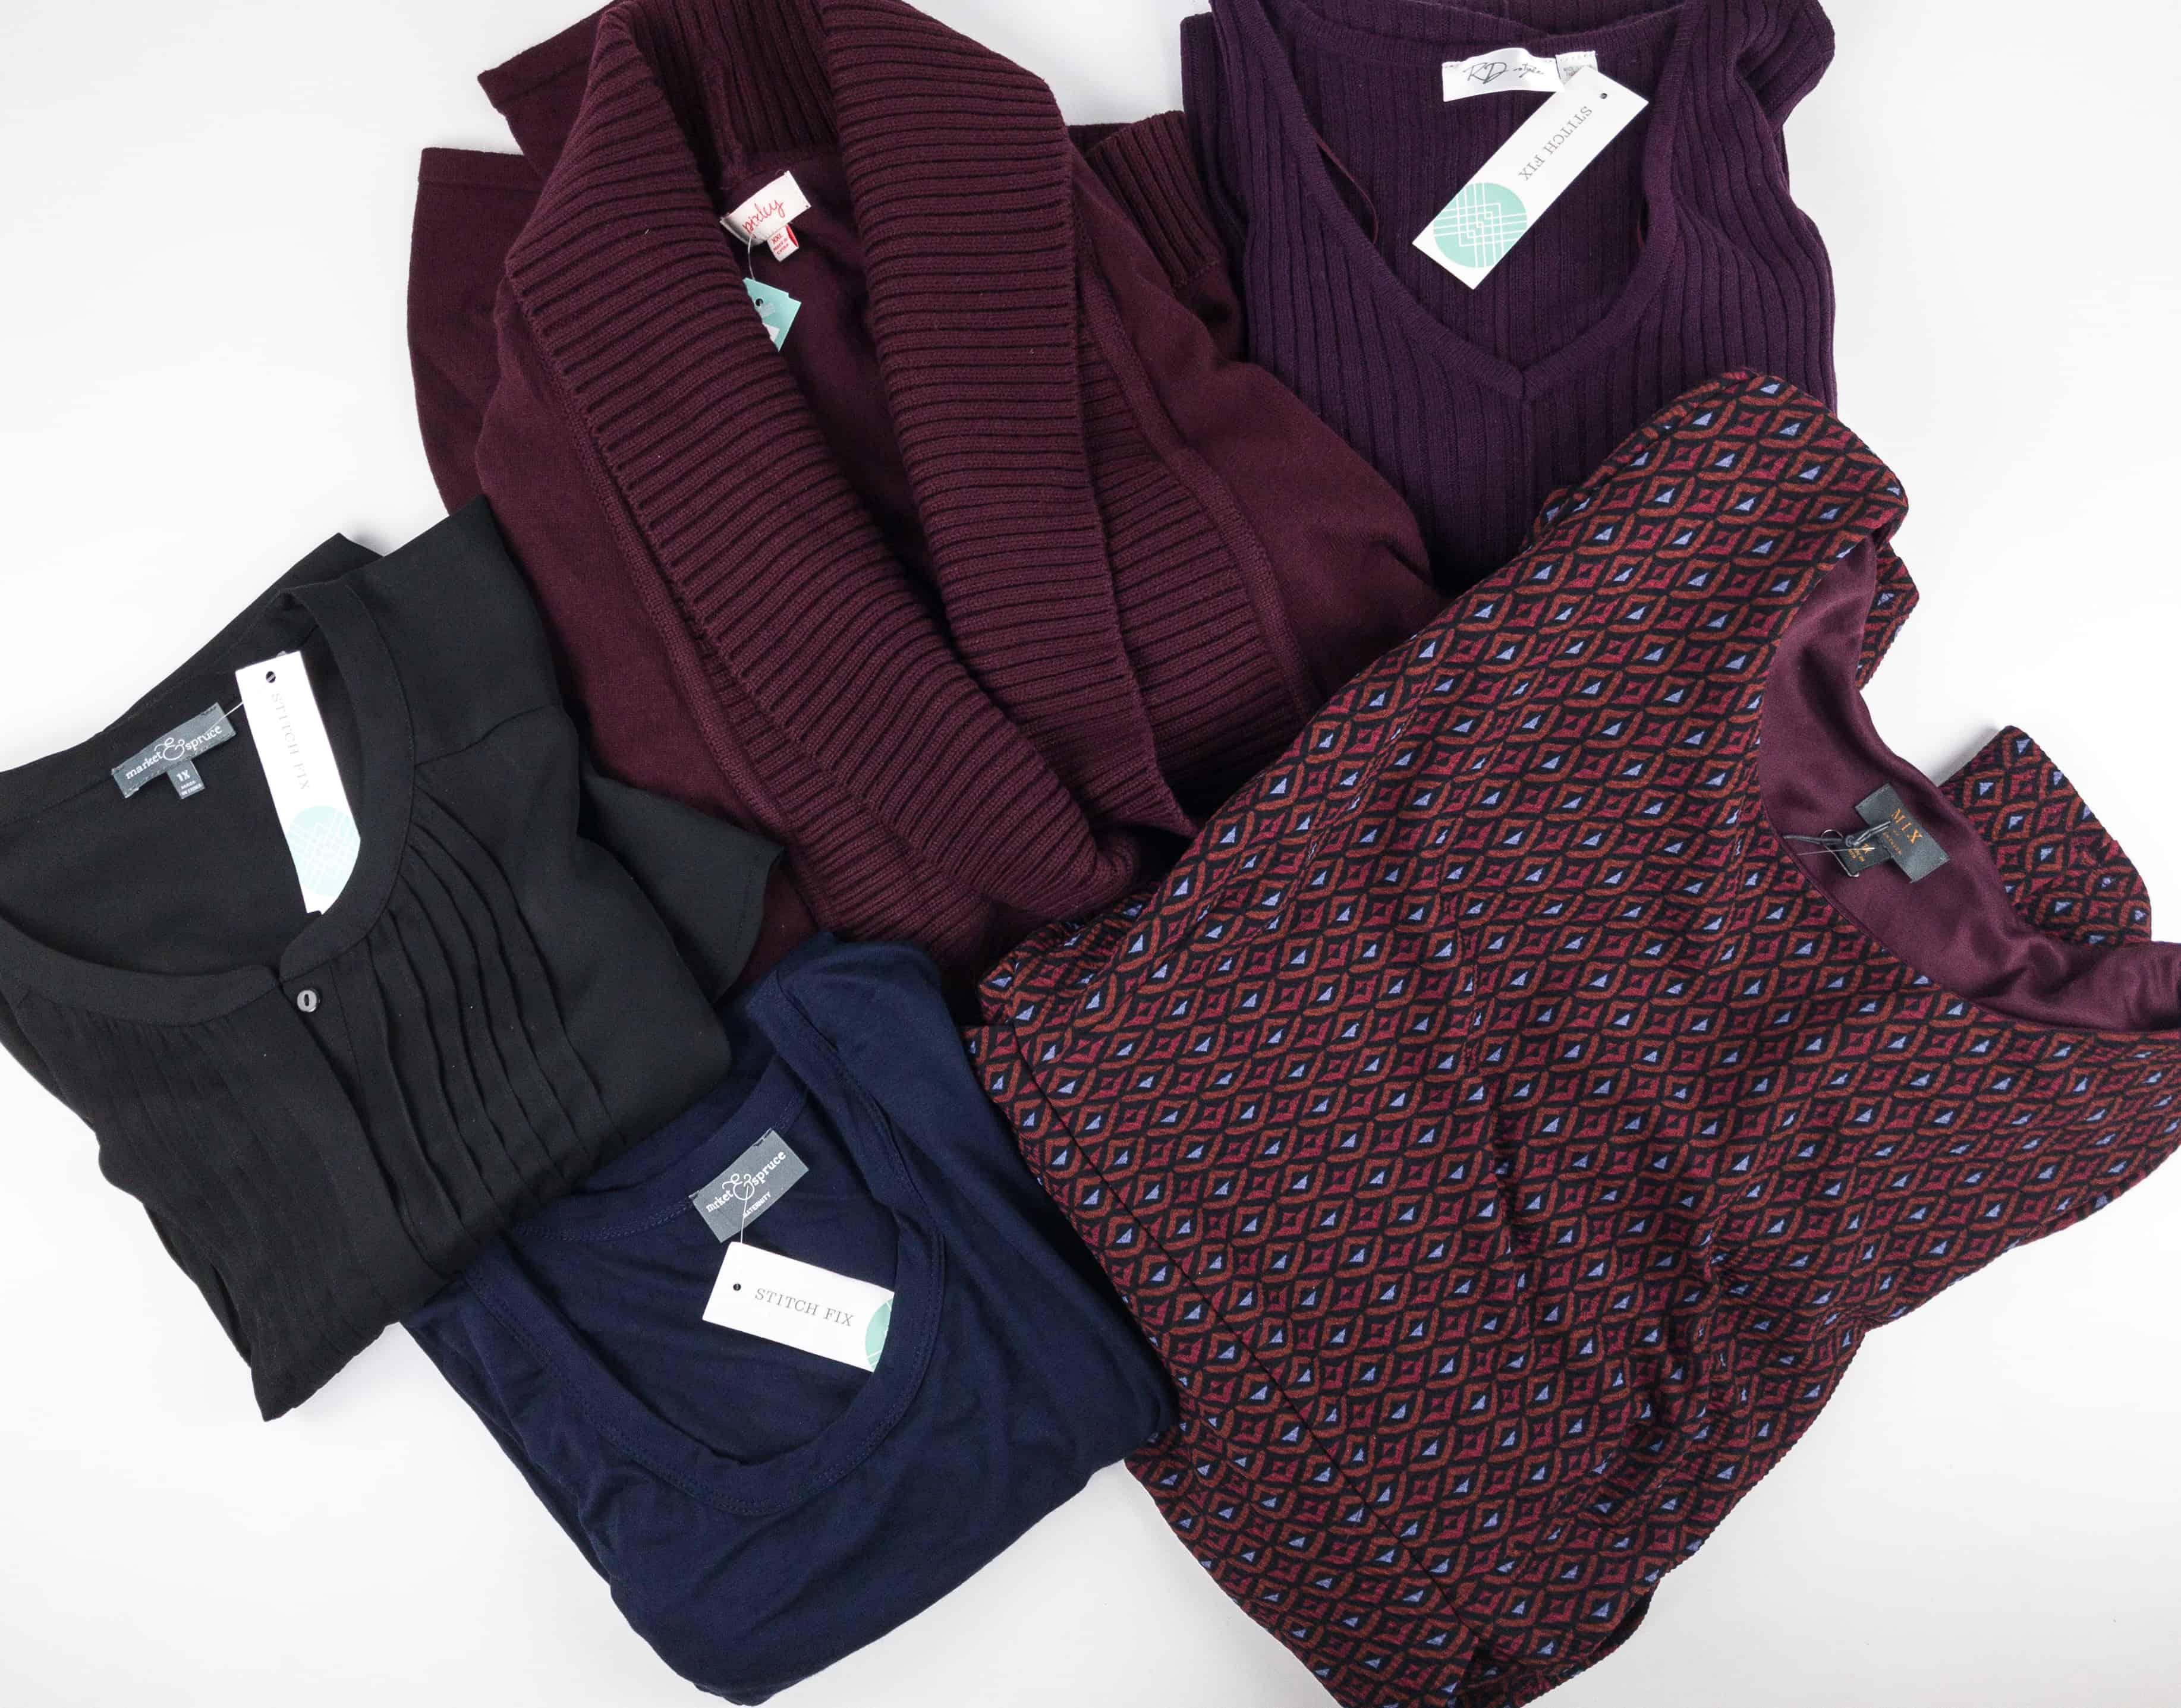 December 2017 Stitch Fix Subscription Box Review {Maternity/Plus} + Try It Free Deal!